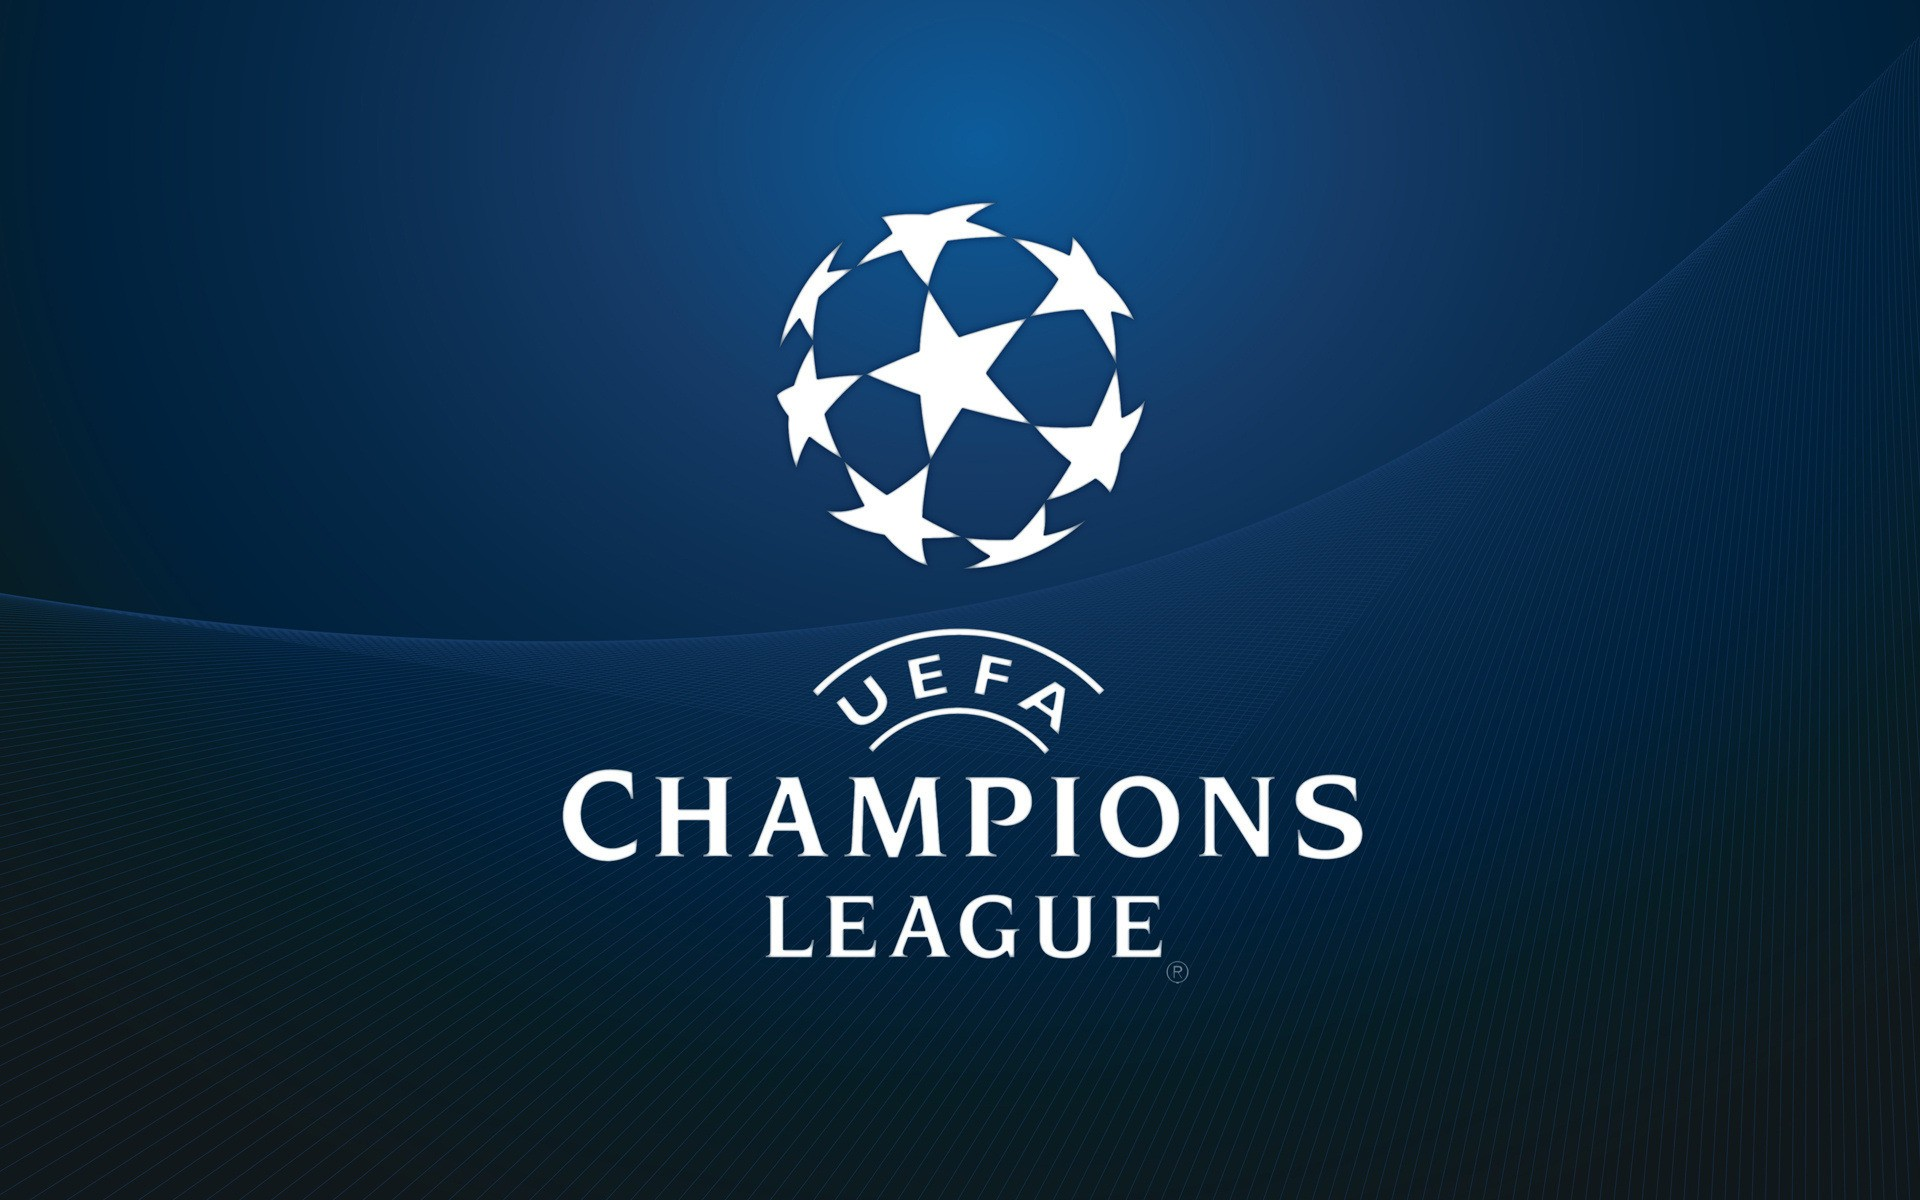 champions-league-logo 1920x1200_83-wide